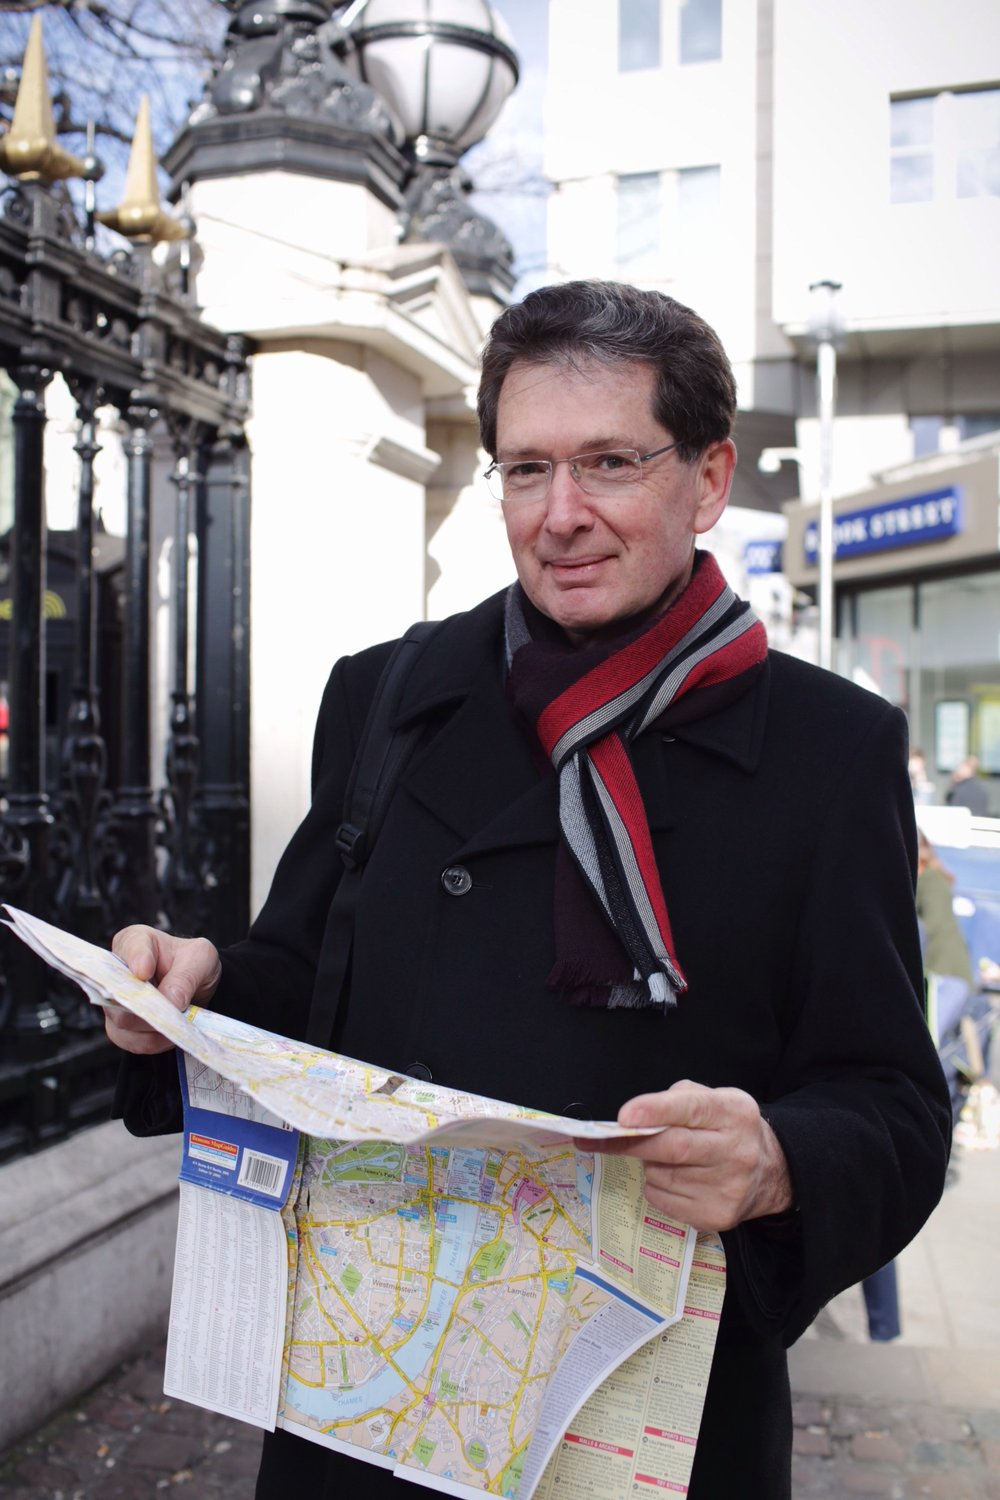 Peter was between meetings, waiting outside Charing Cross Station to meet up with a colleague, and reading his map to pass the time. It was such a sunny day that the idea of a map, with all of the possibility for adventure it contains, intrigued me.